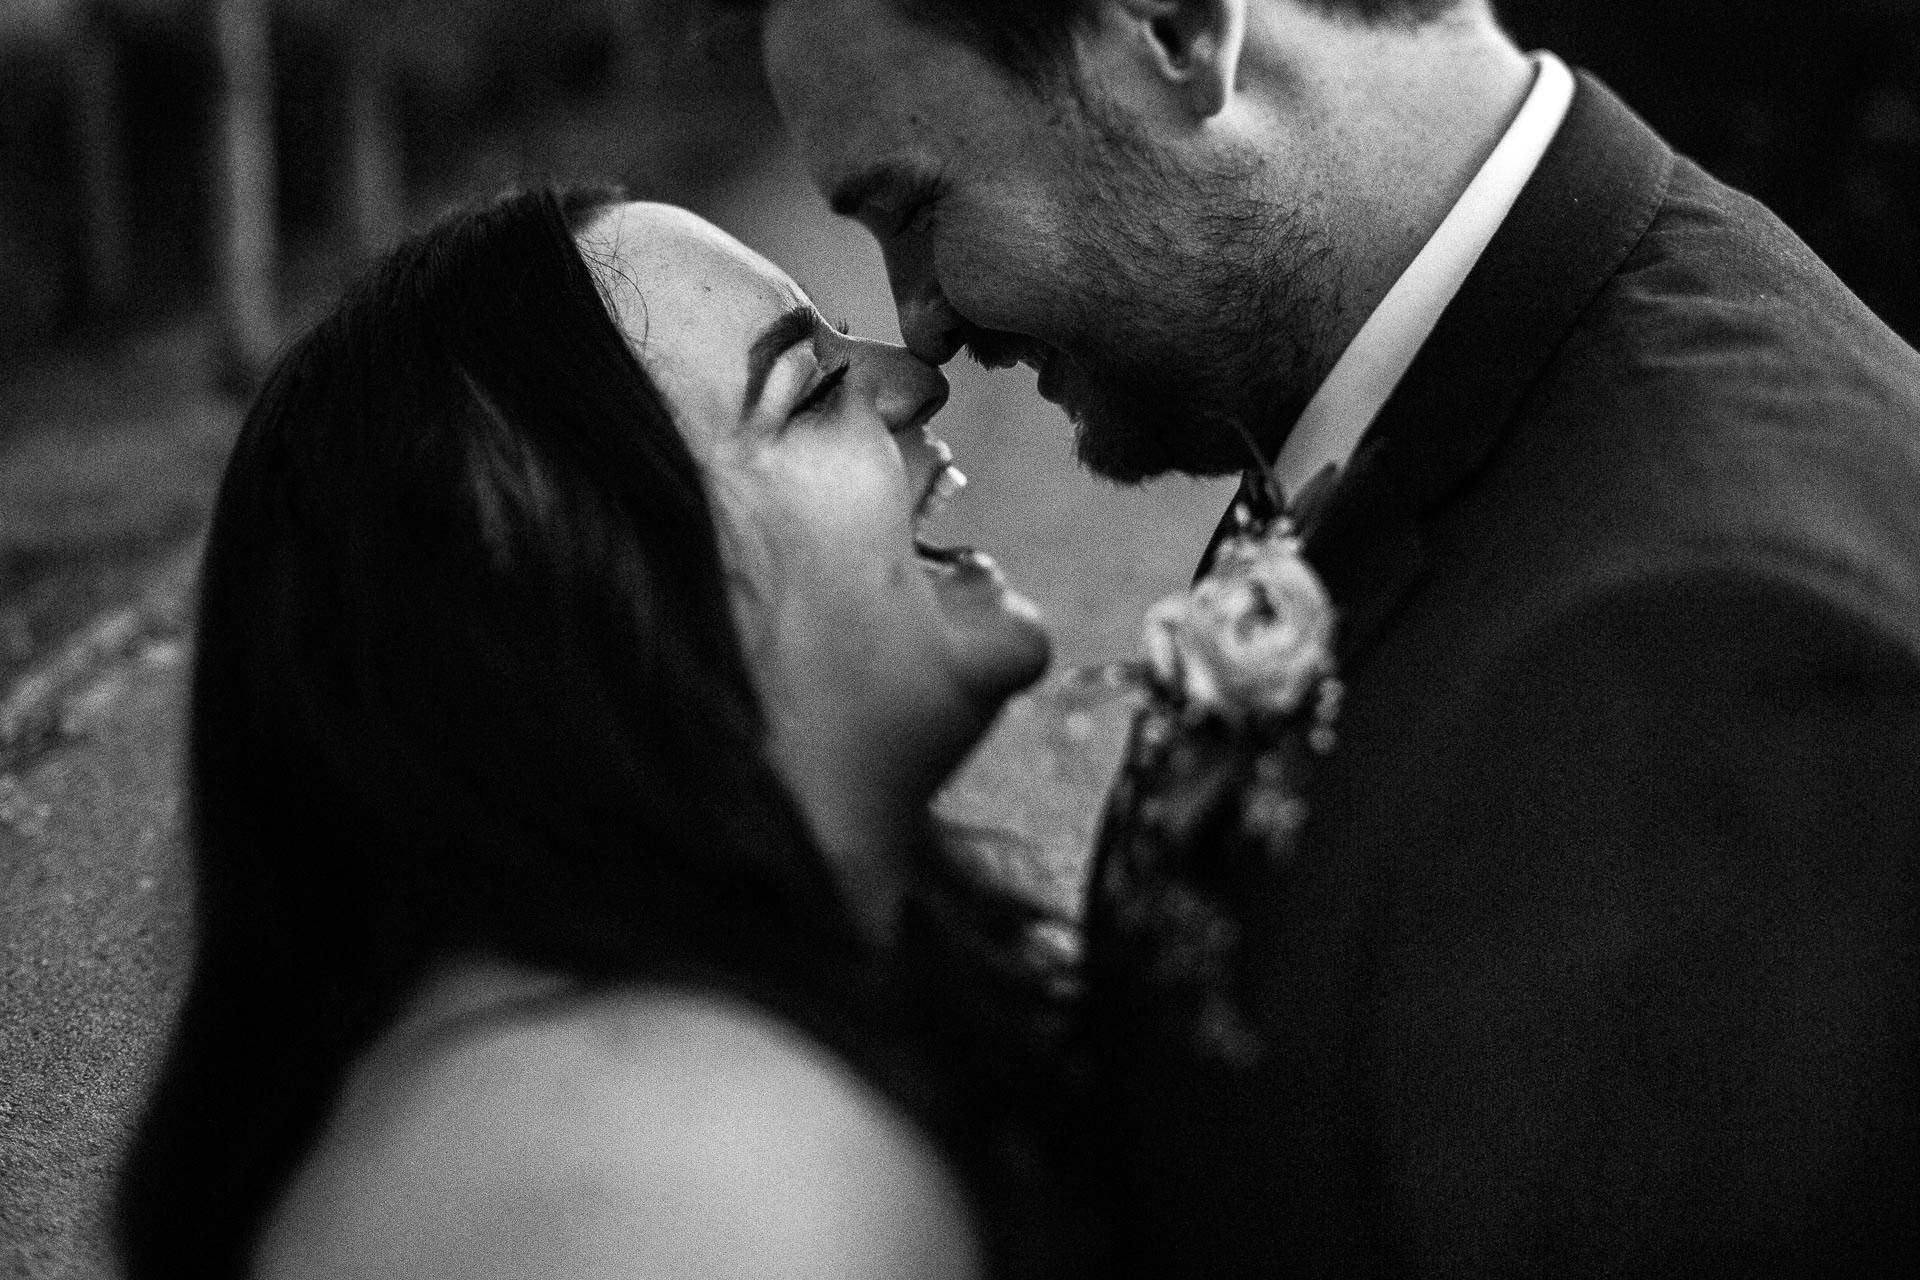 Great Hall at Mains Wedding Photography - S&S - couple laughing, close up in black and white